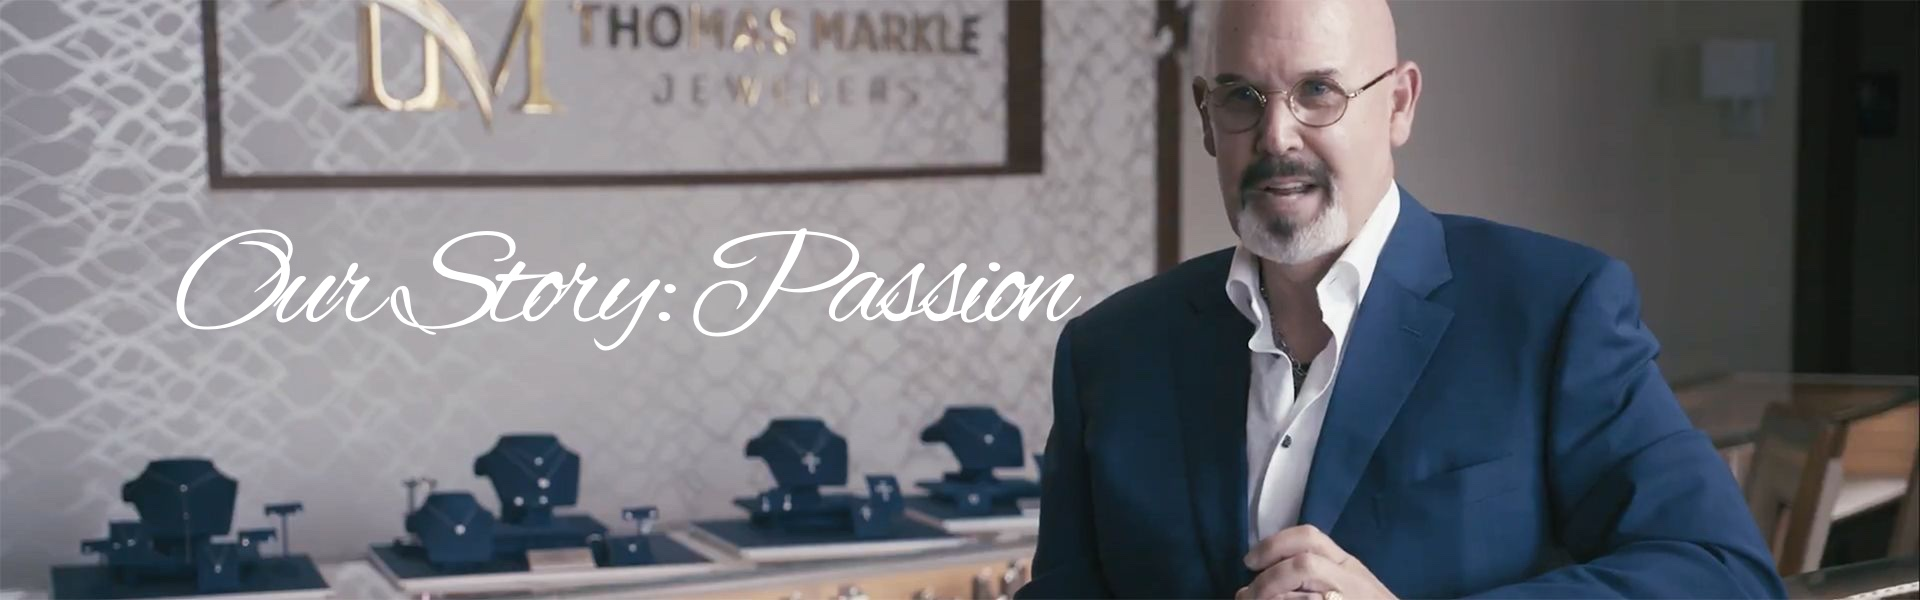 Our Story: Passion